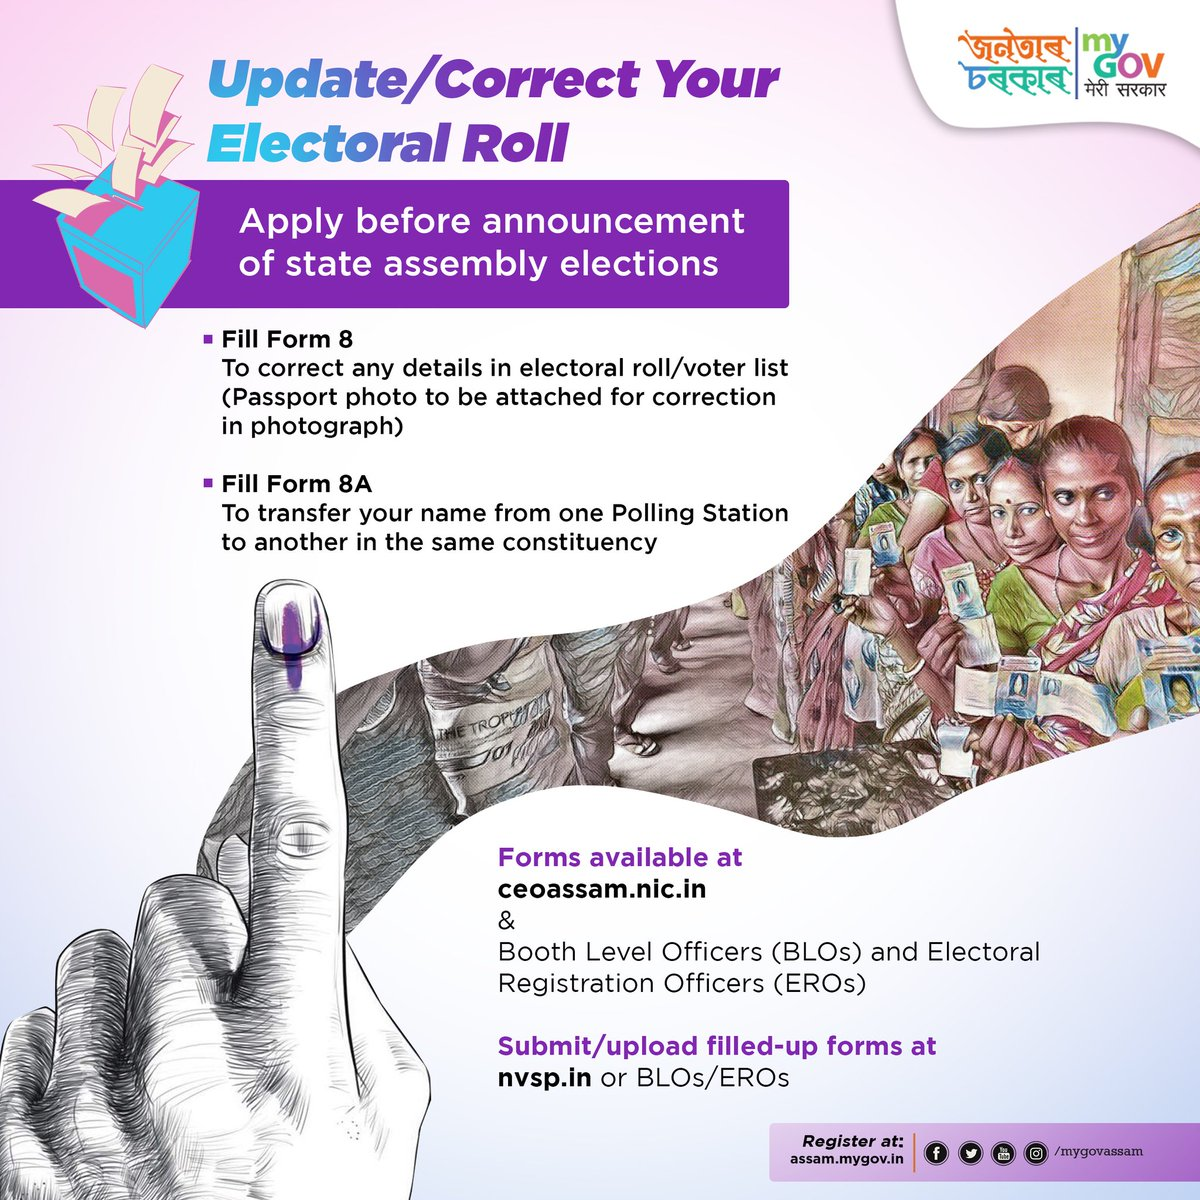 Updating the electoral roll has never been this easier! Apply in the given link to make any modification in your electoral roll/voter list without any hassle.